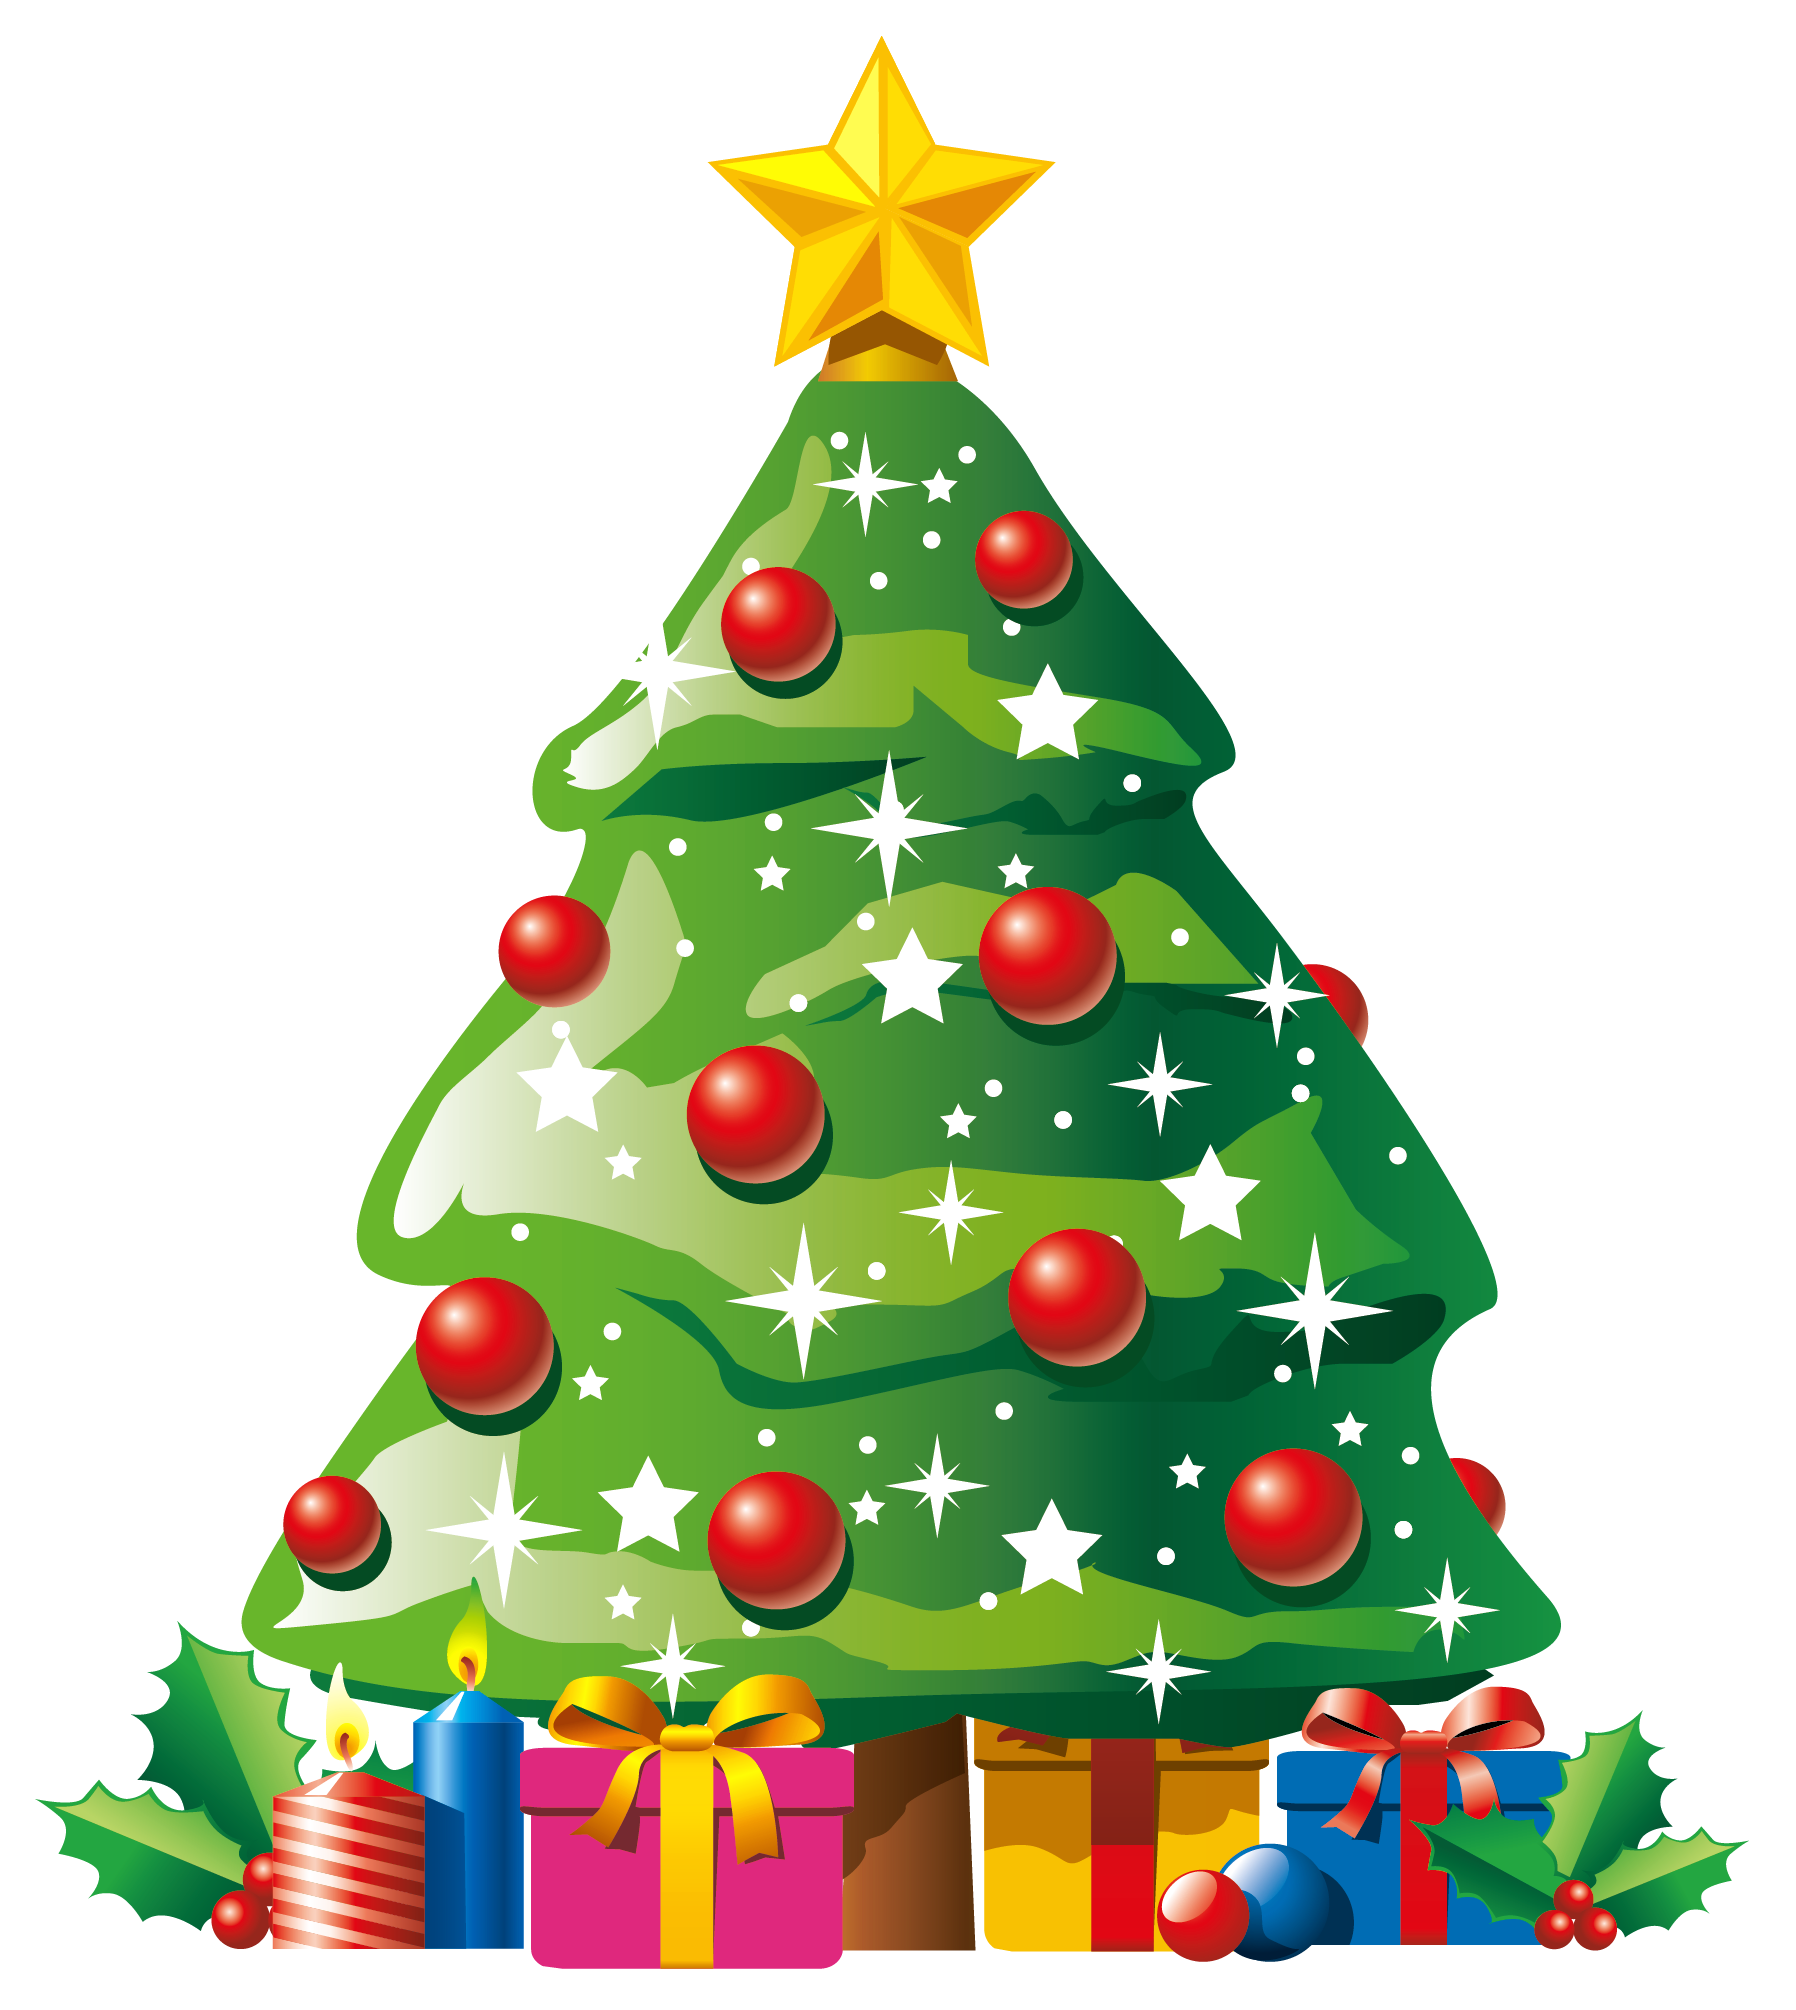 Transparent_Deco_Christmas_Tree_with_Gifts_Clipart.png?m=1415796660.